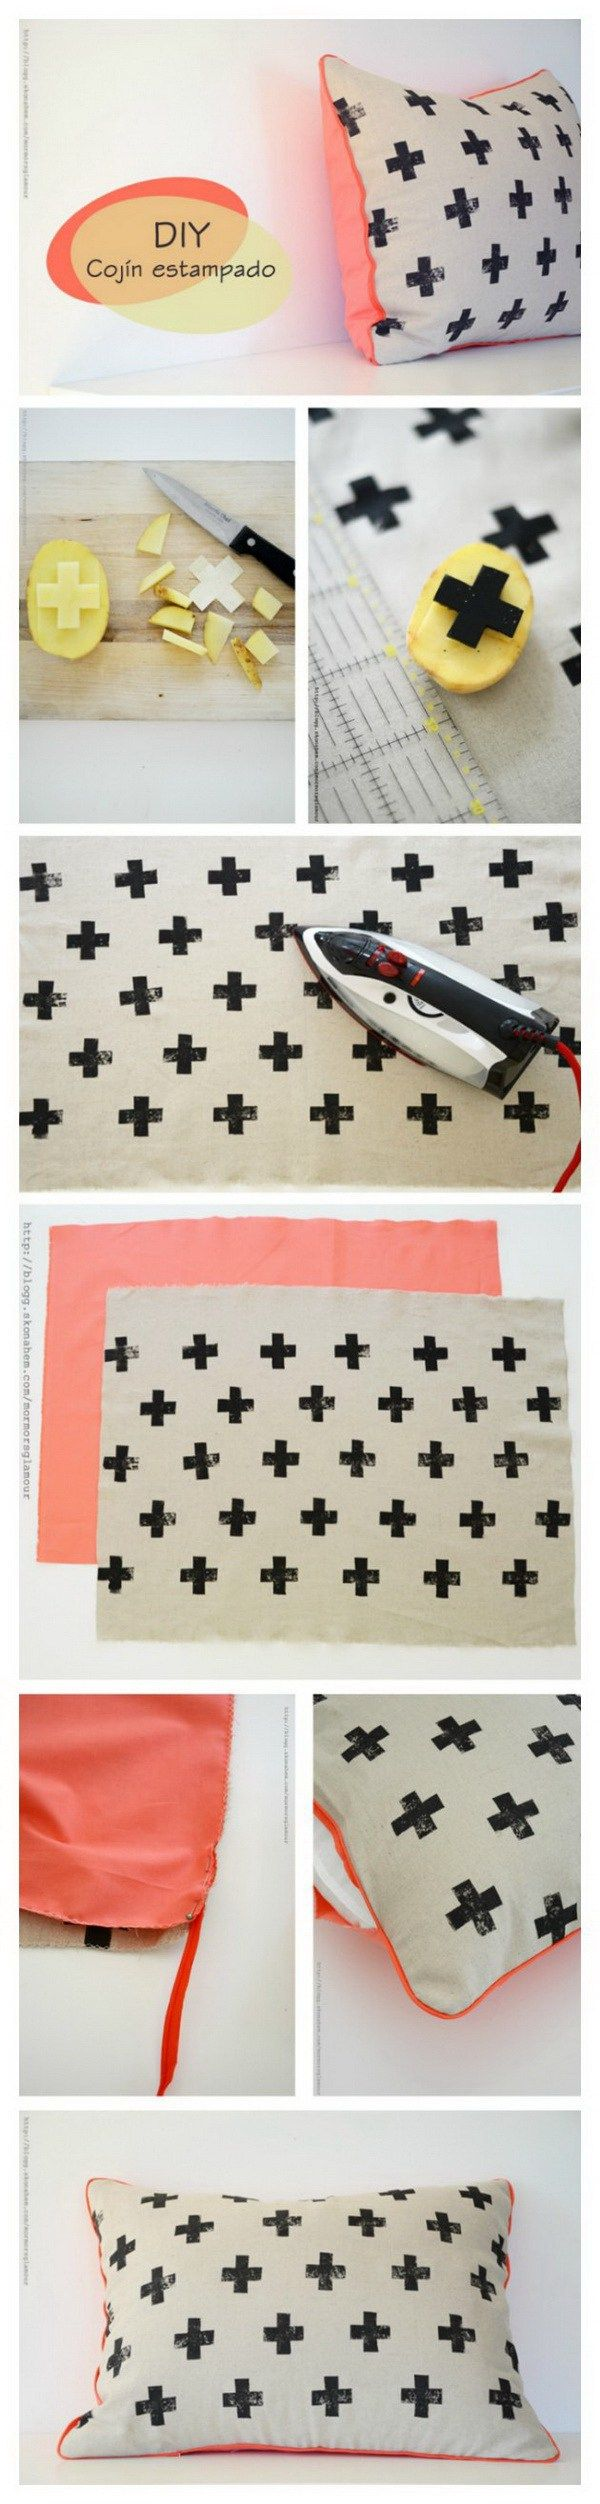 DIY Potato Stamped Pillow with Cross Prints: Create a fun pillow using a potato stamp and fabric ink! An easy and pretty DIY project for teenage…